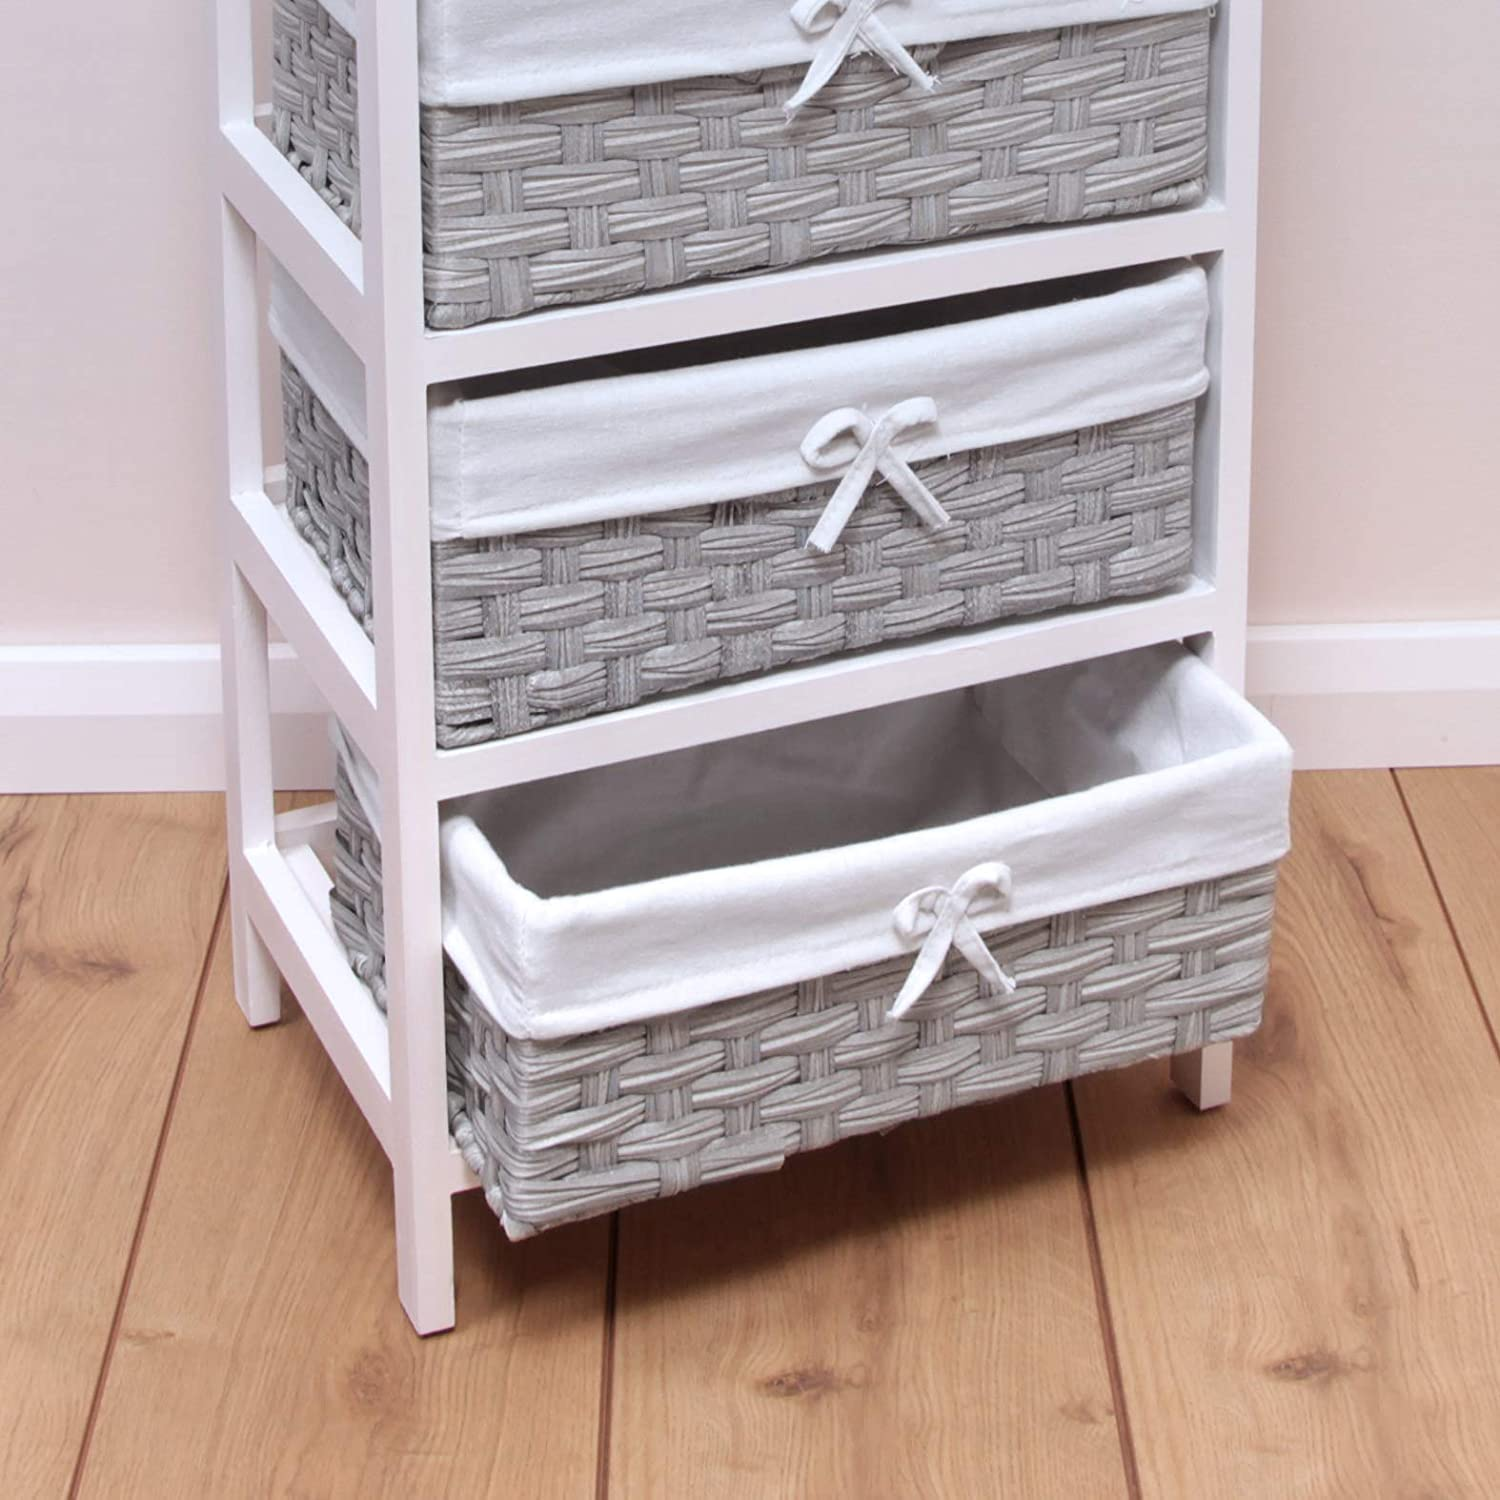 woodluv 4 Chest of Drawers Wooden Storage Unit With Non-Woven Basket Bedside Cabinets Fully Assembled Bedroom or Bathroom